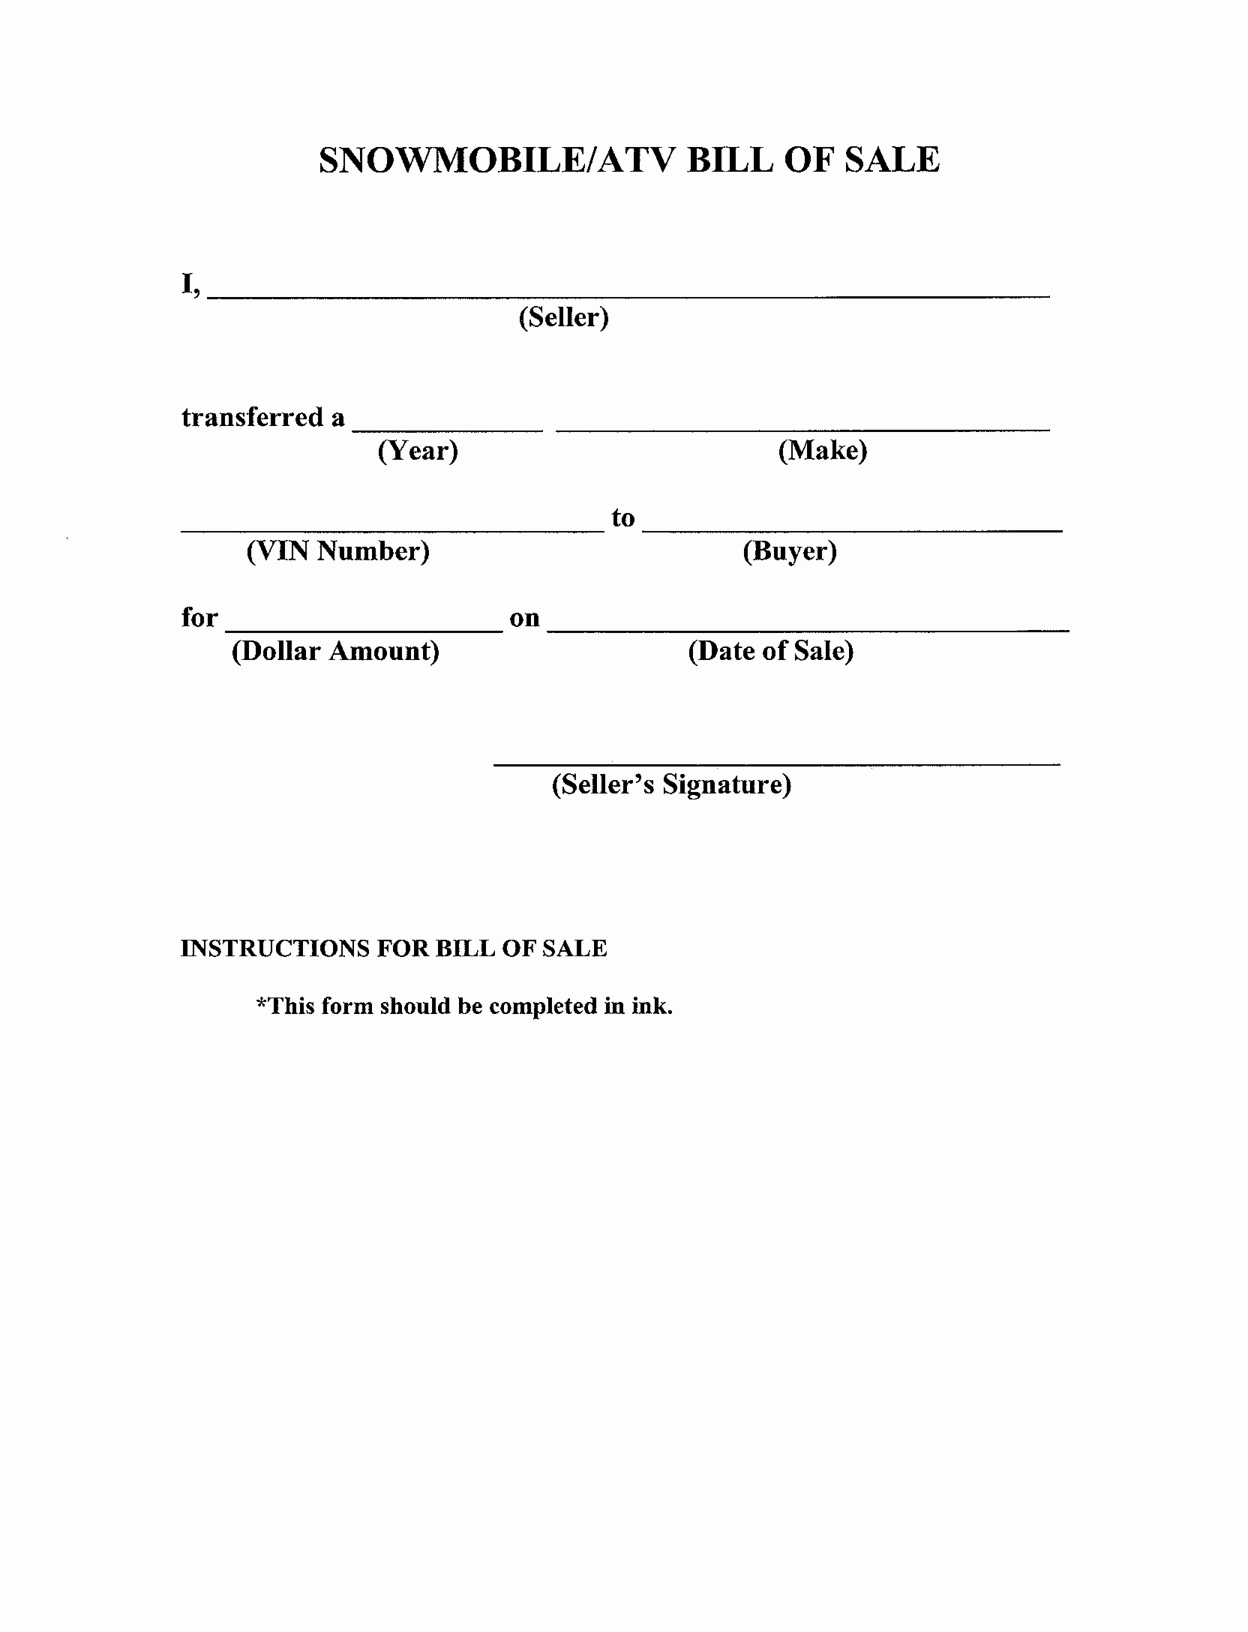 Bill Of Sale Printable Document Lovely Free Printable Bill Of Sale Templates form Generic